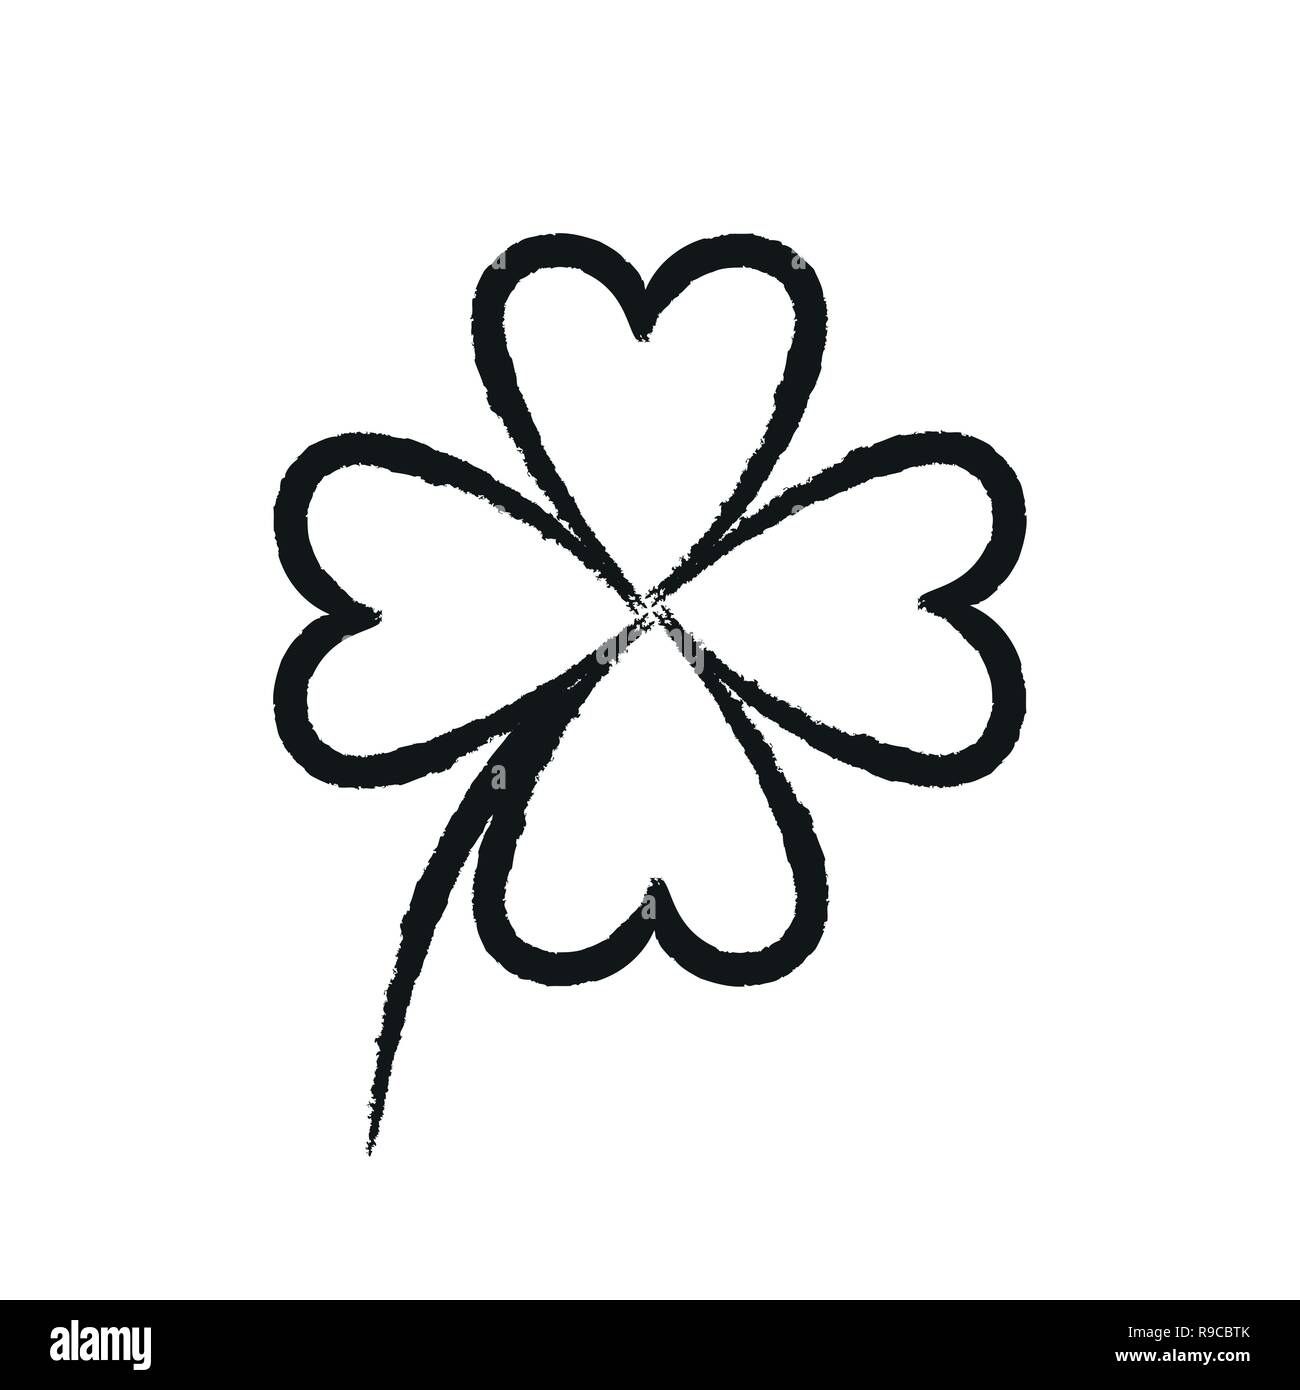 simple four-leaf clover drawing on white background vector illustration EPS10 Stock Vector